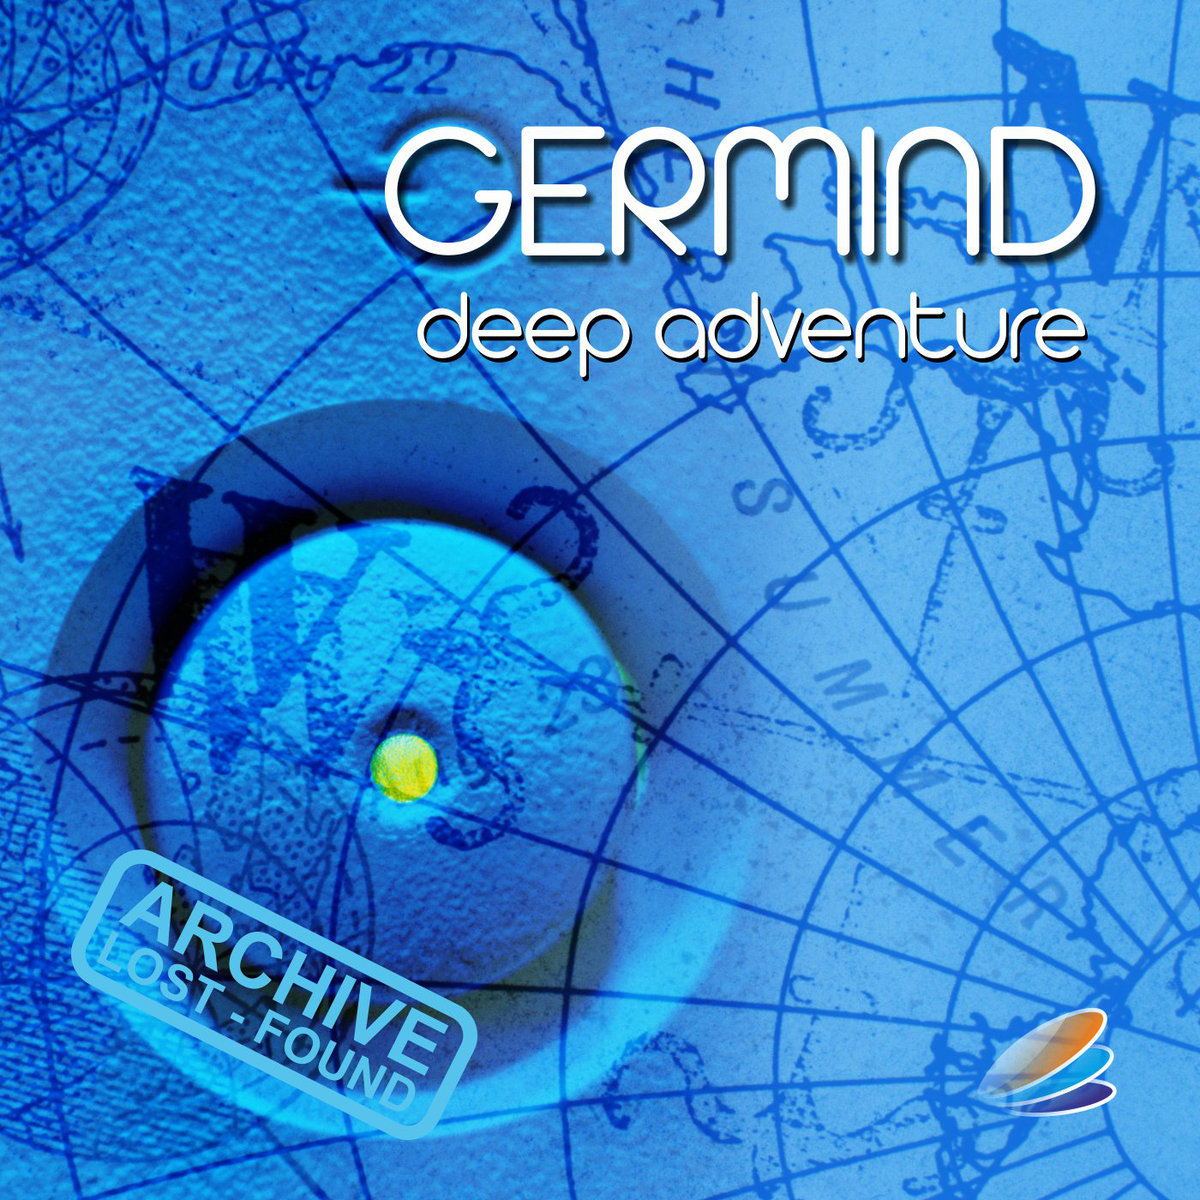 Germind - Deep Adventure